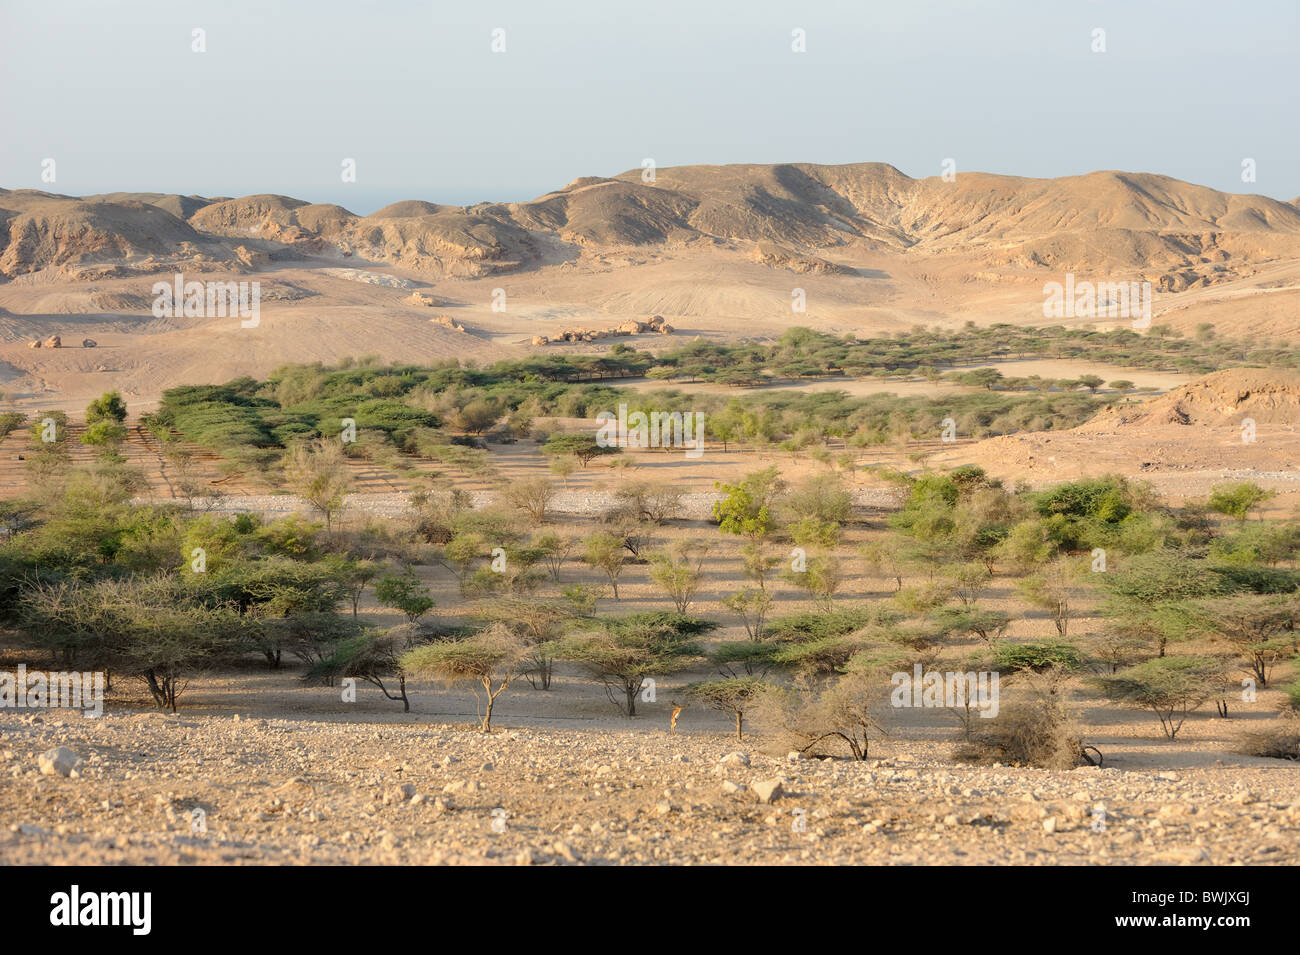 Acacia and other trees irrigated with desalinated water on Sir Bani Yas Island Nature Reserve, UAE - Stock Image